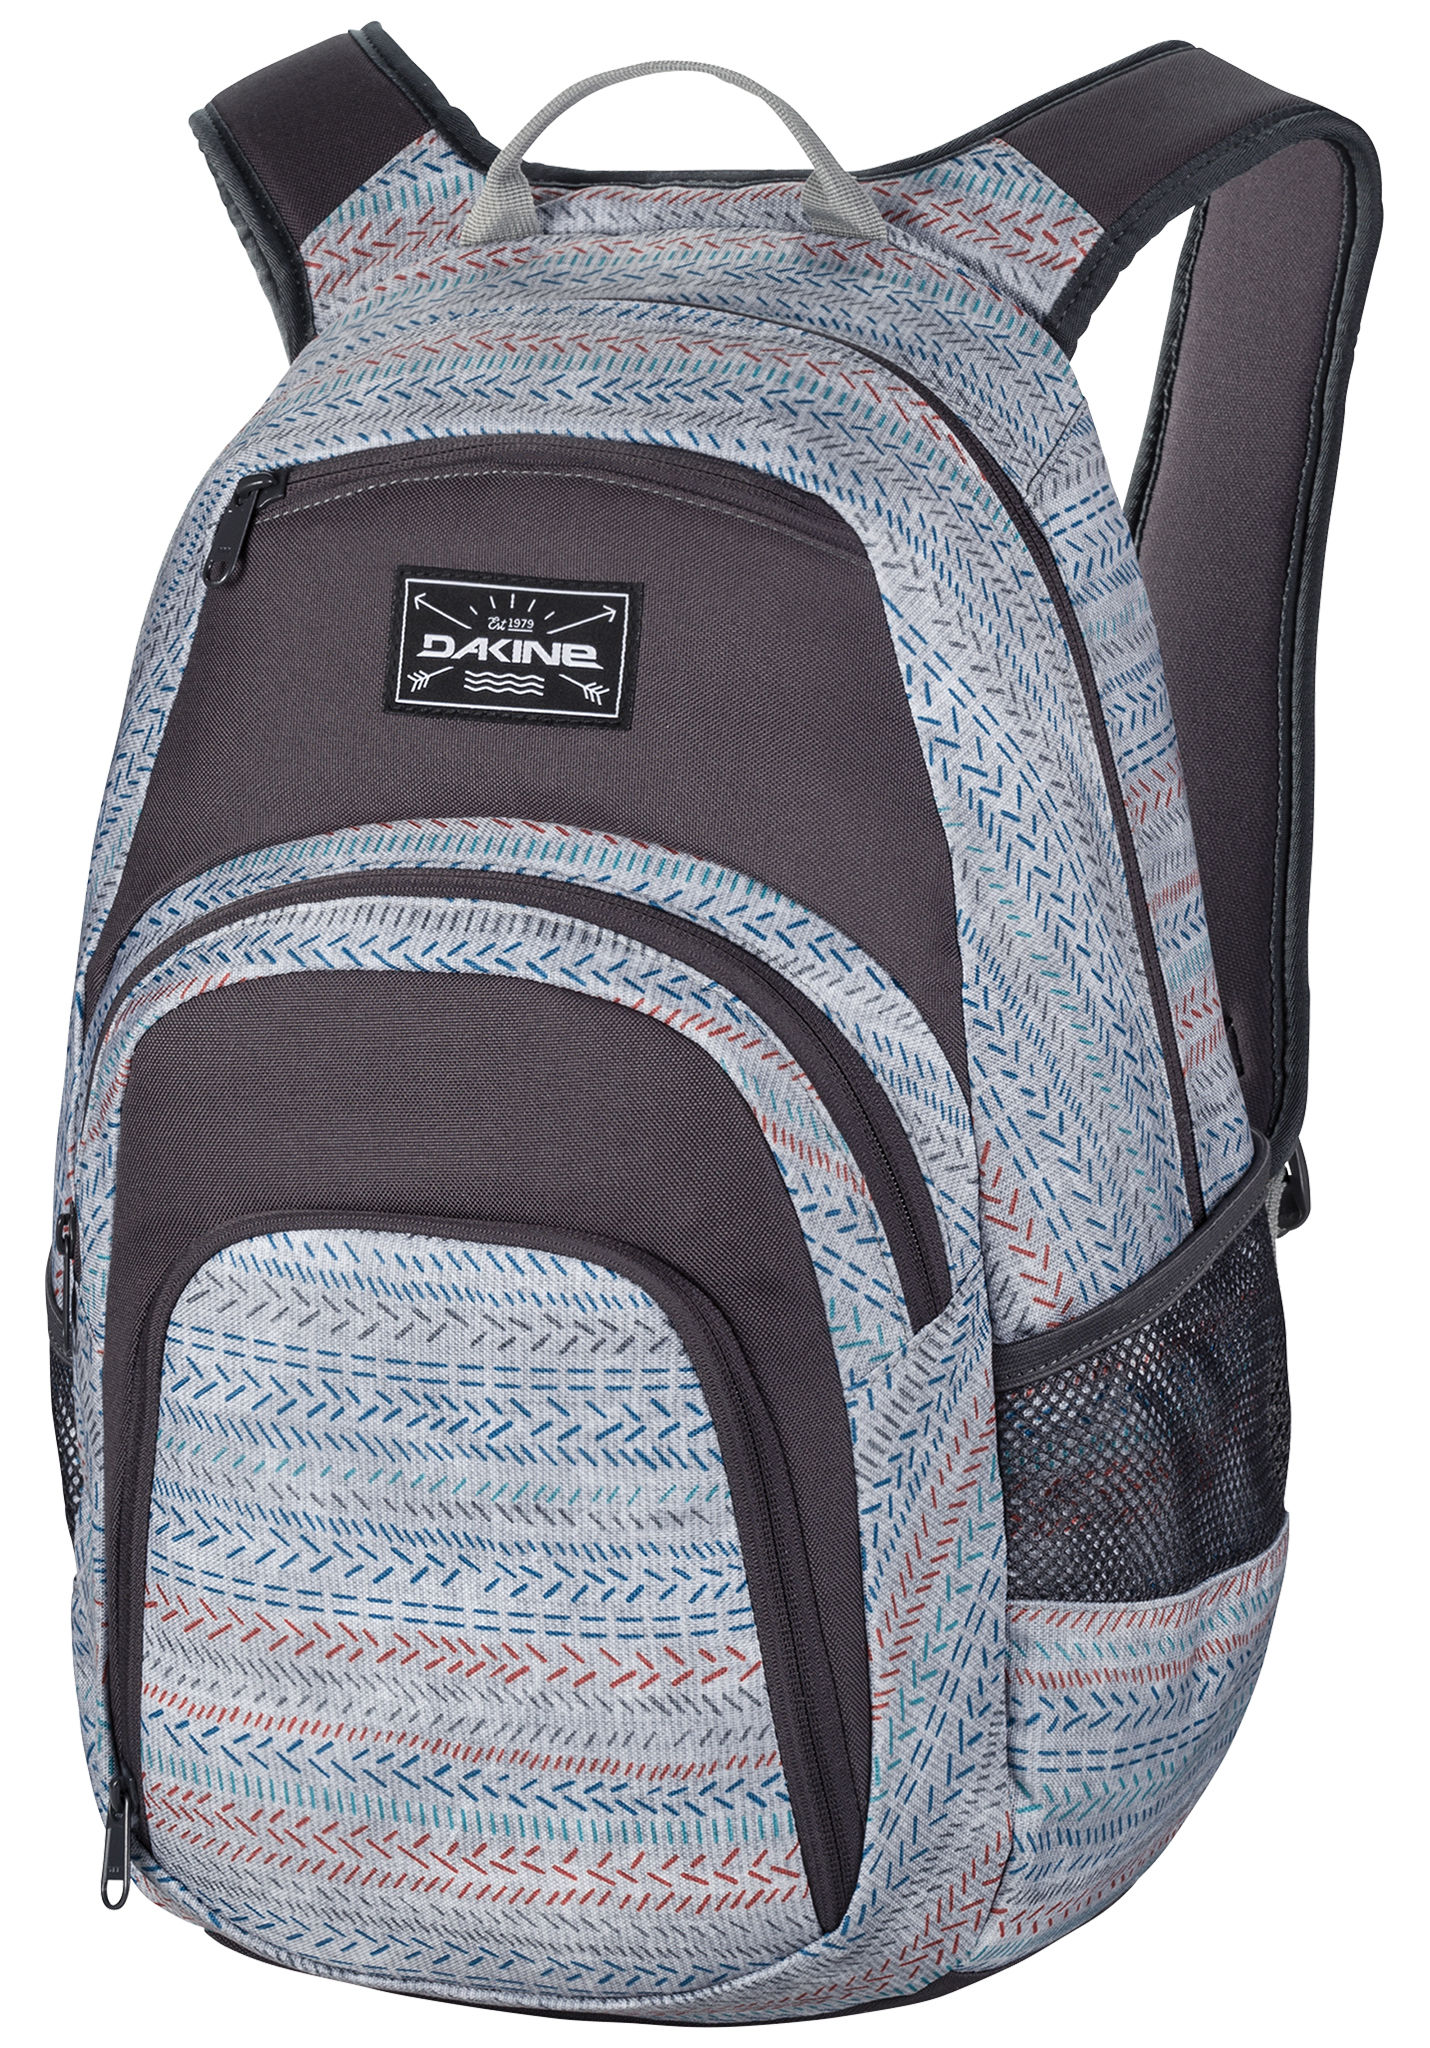 Dakine Campus 25L - Backpack for Men - Multicolor - Planet Sports